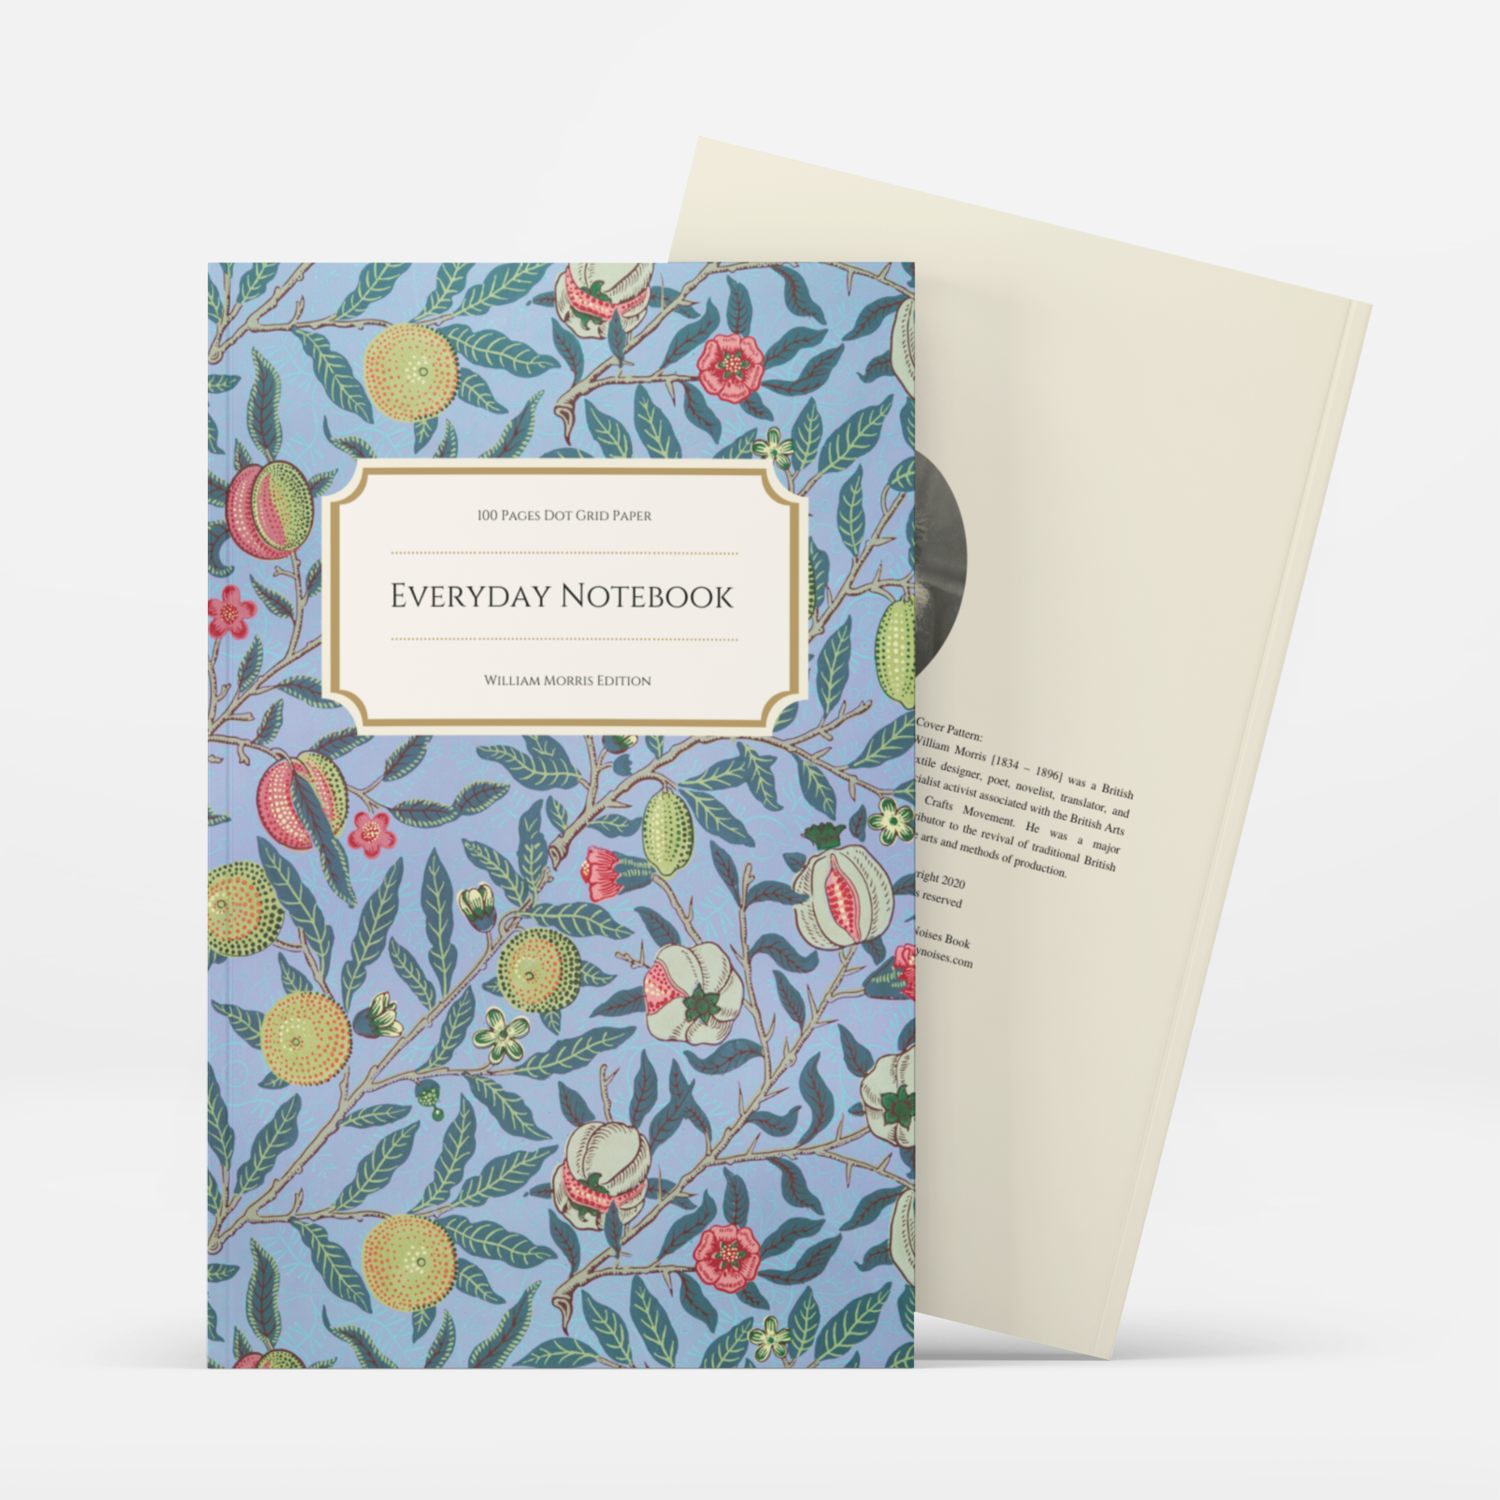 Everyday Notebook (William Morris Edition)